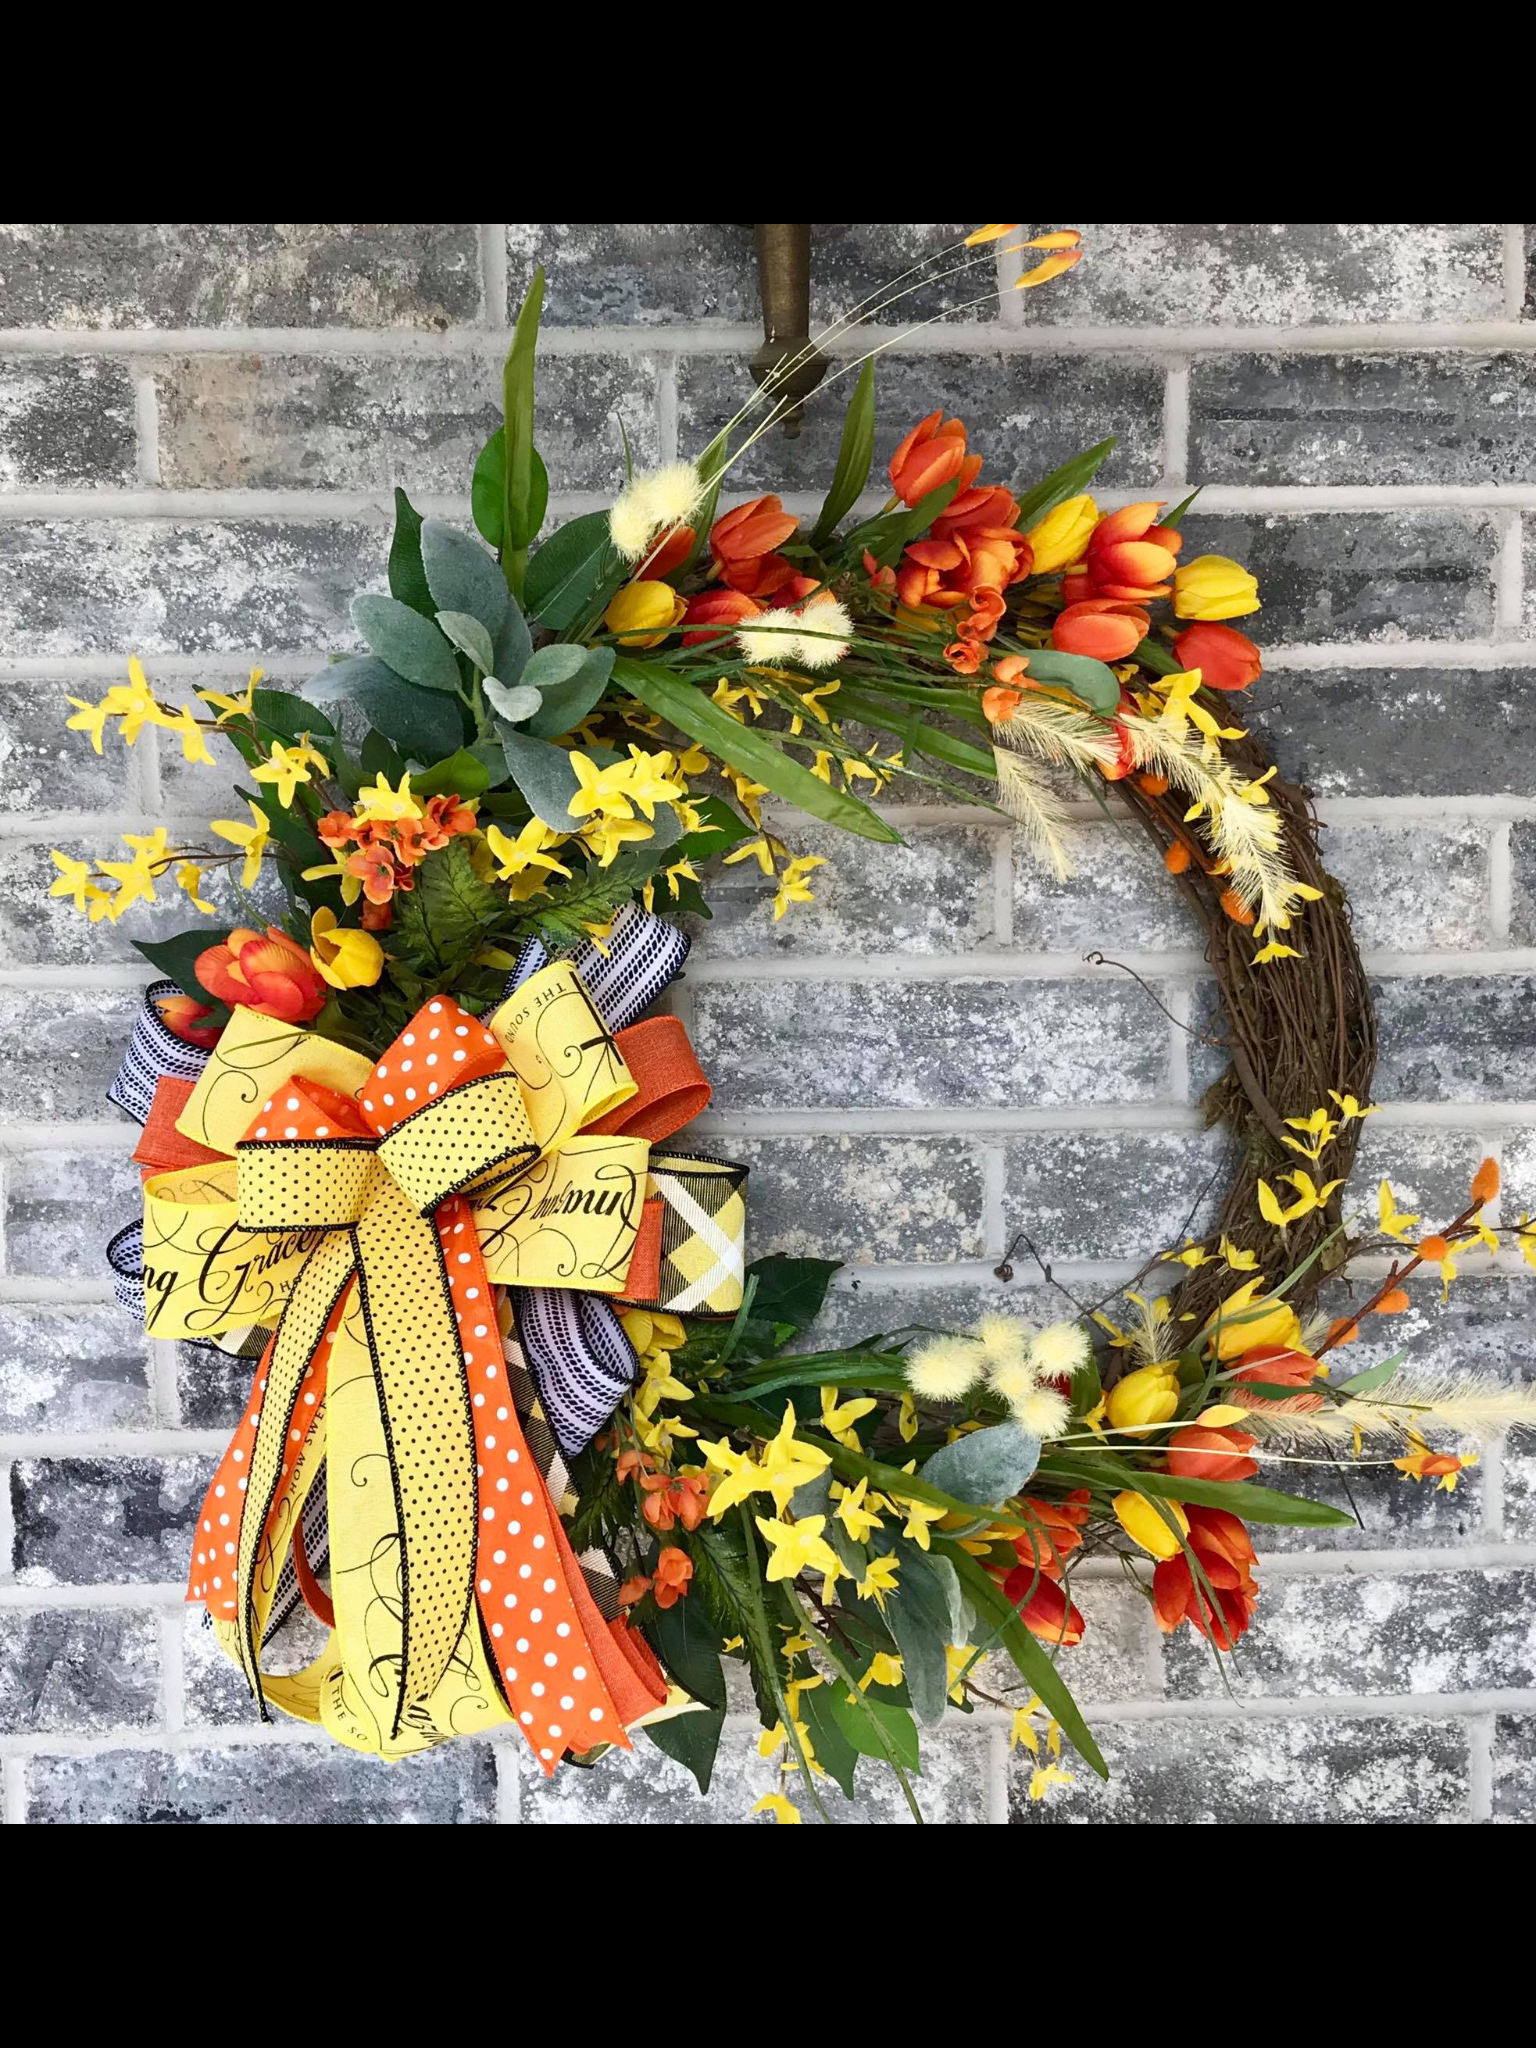 How To Make A Bow For A Wreath Tutorials Front Doors